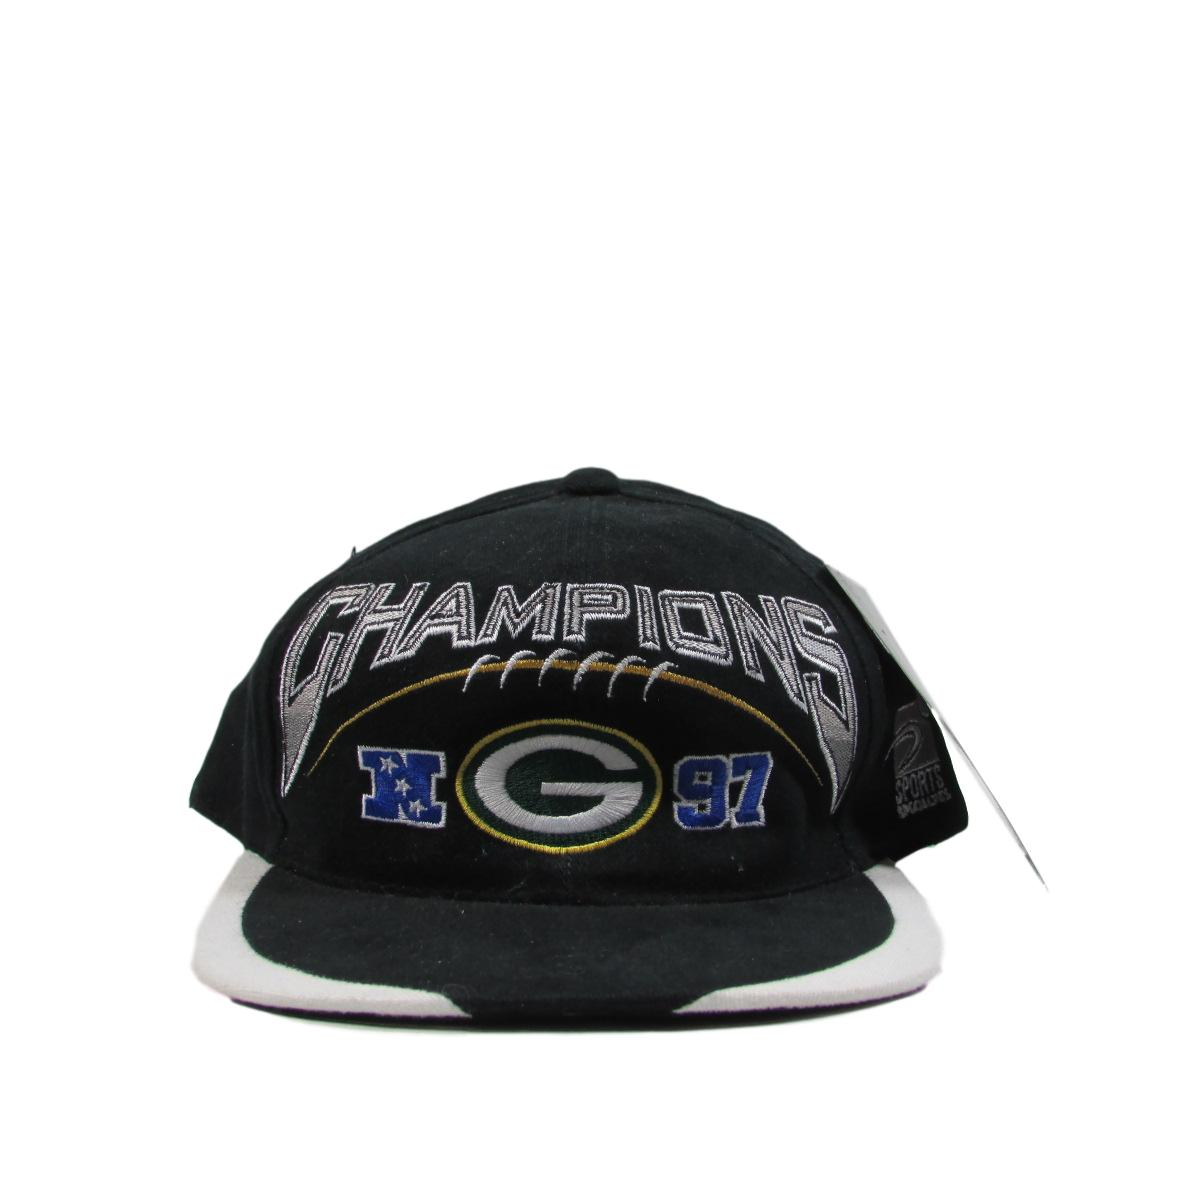 Green Bay Packers 1997 National Football League Champions Deadstock Snapback Pro Line Sports Specialties